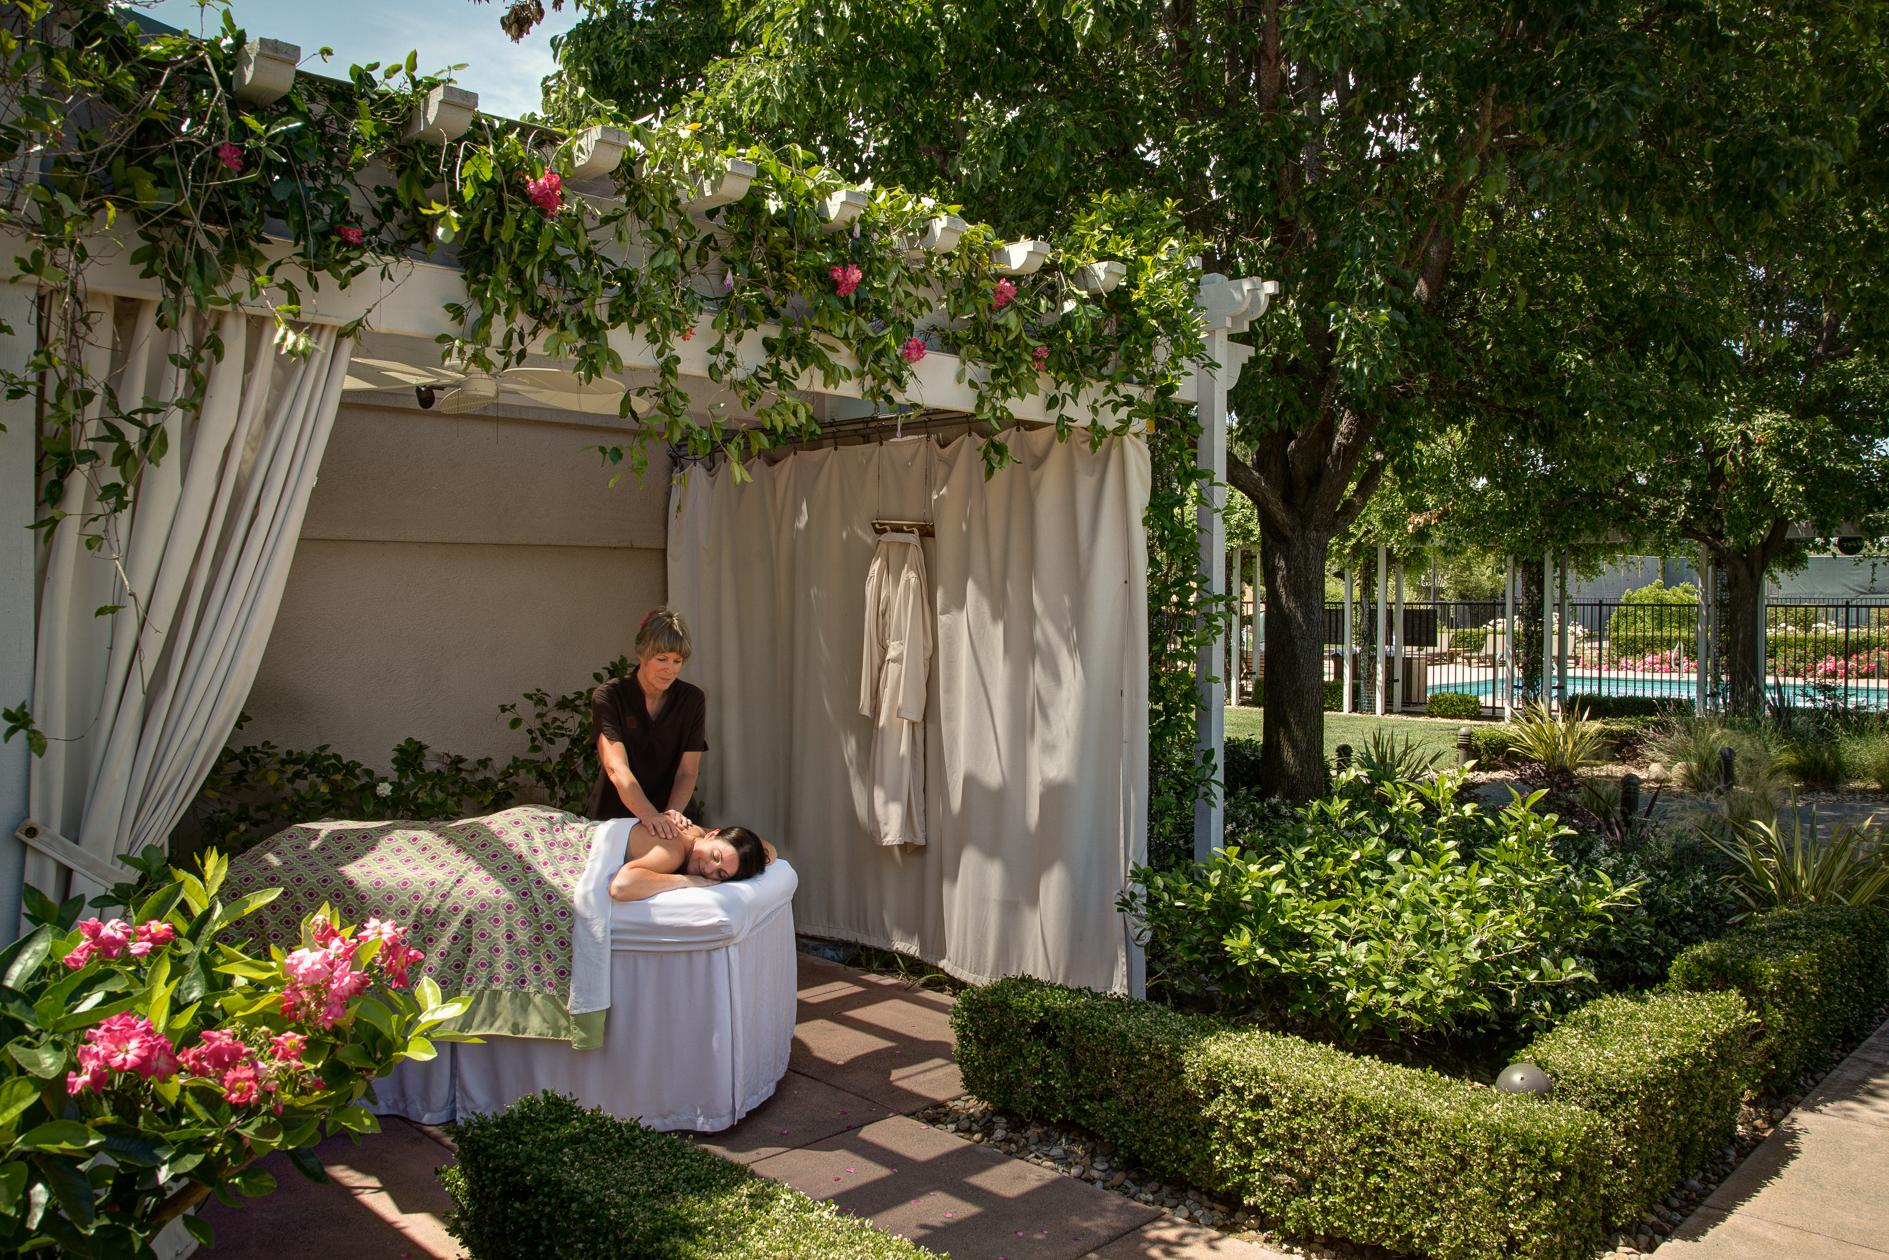 Image of lady receiving and outdoor massage